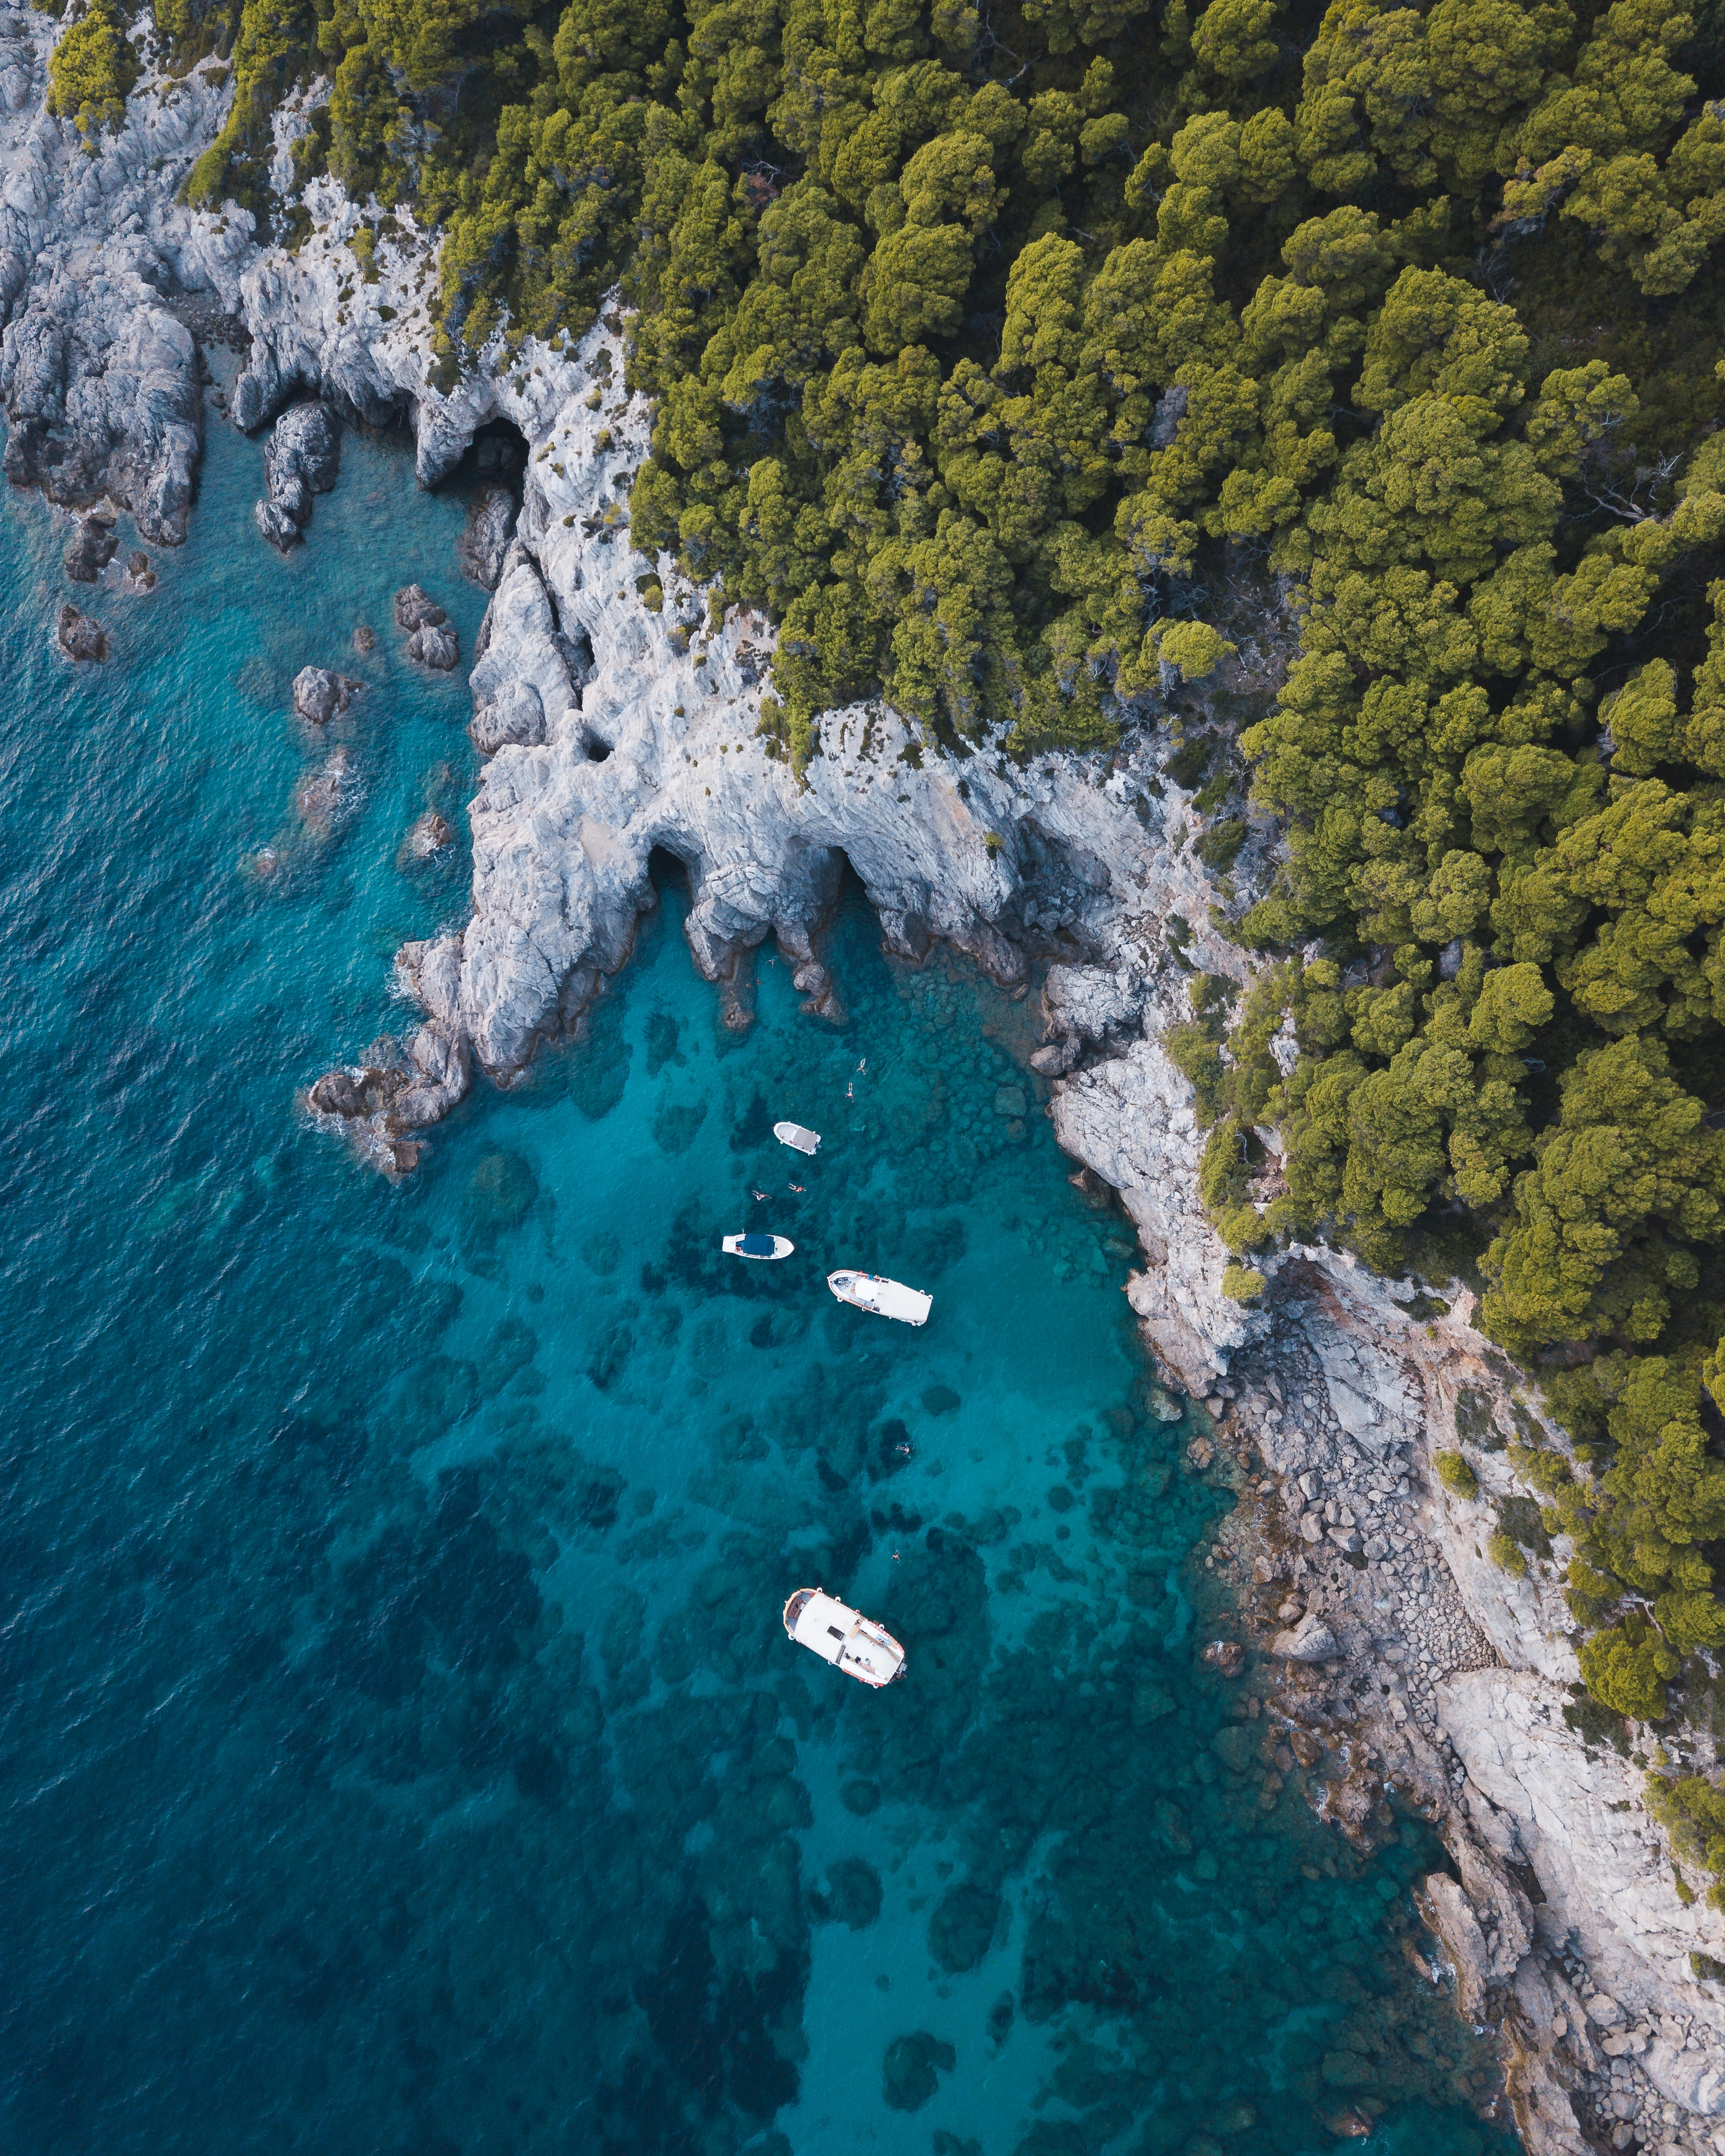 149792 download wallpaper Nature, Sea, Rocks, View From Above, Coast, Boat screensavers and pictures for free